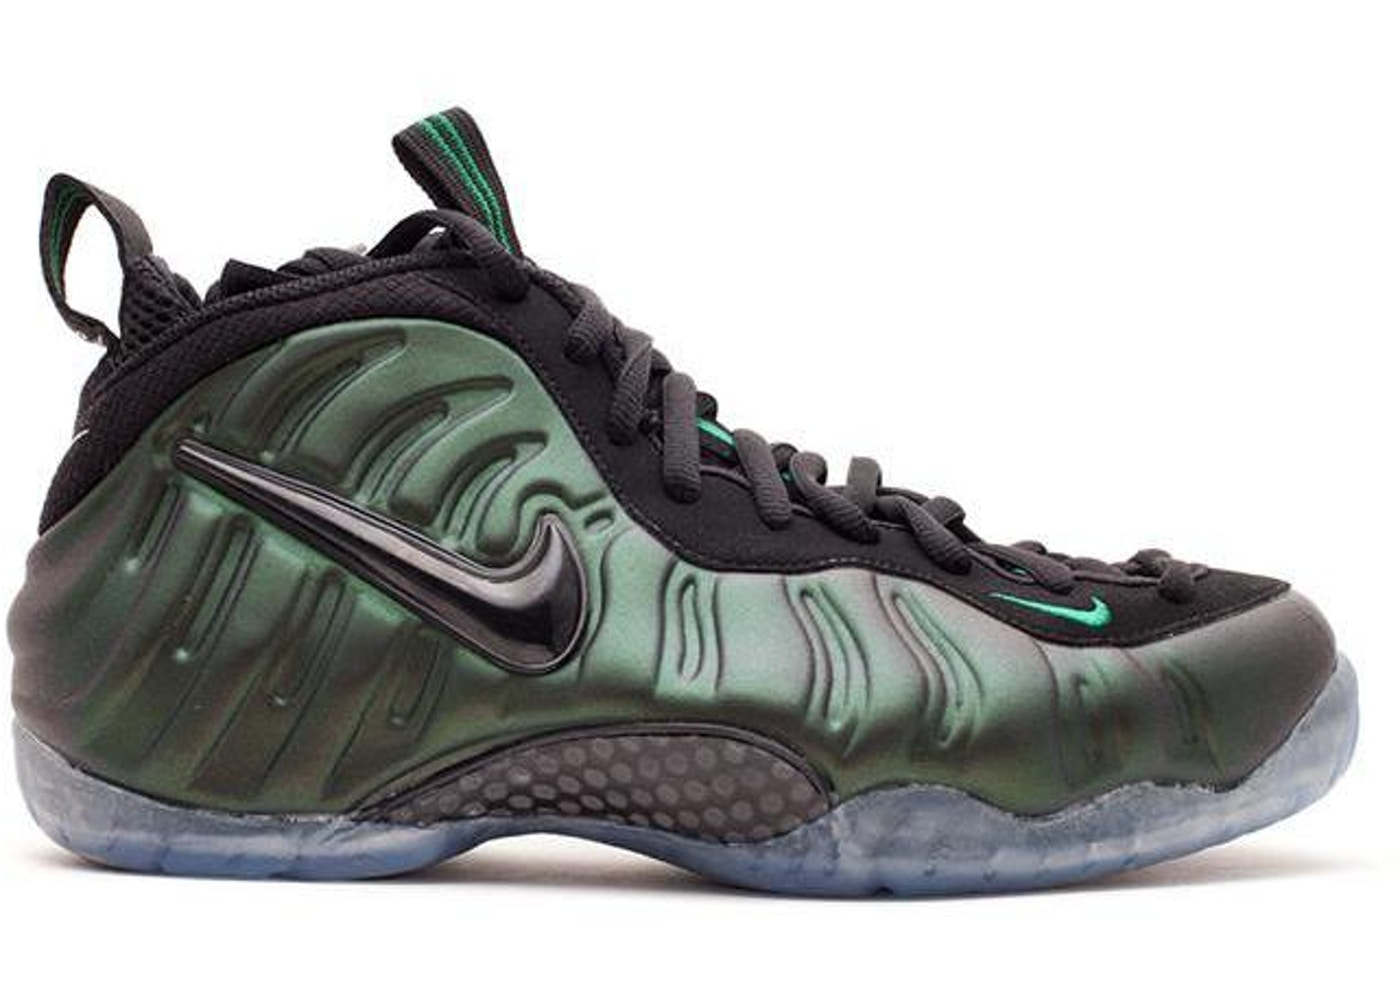 01813d79564e6 Air Foamposite Pro Pine Green - 624041-301